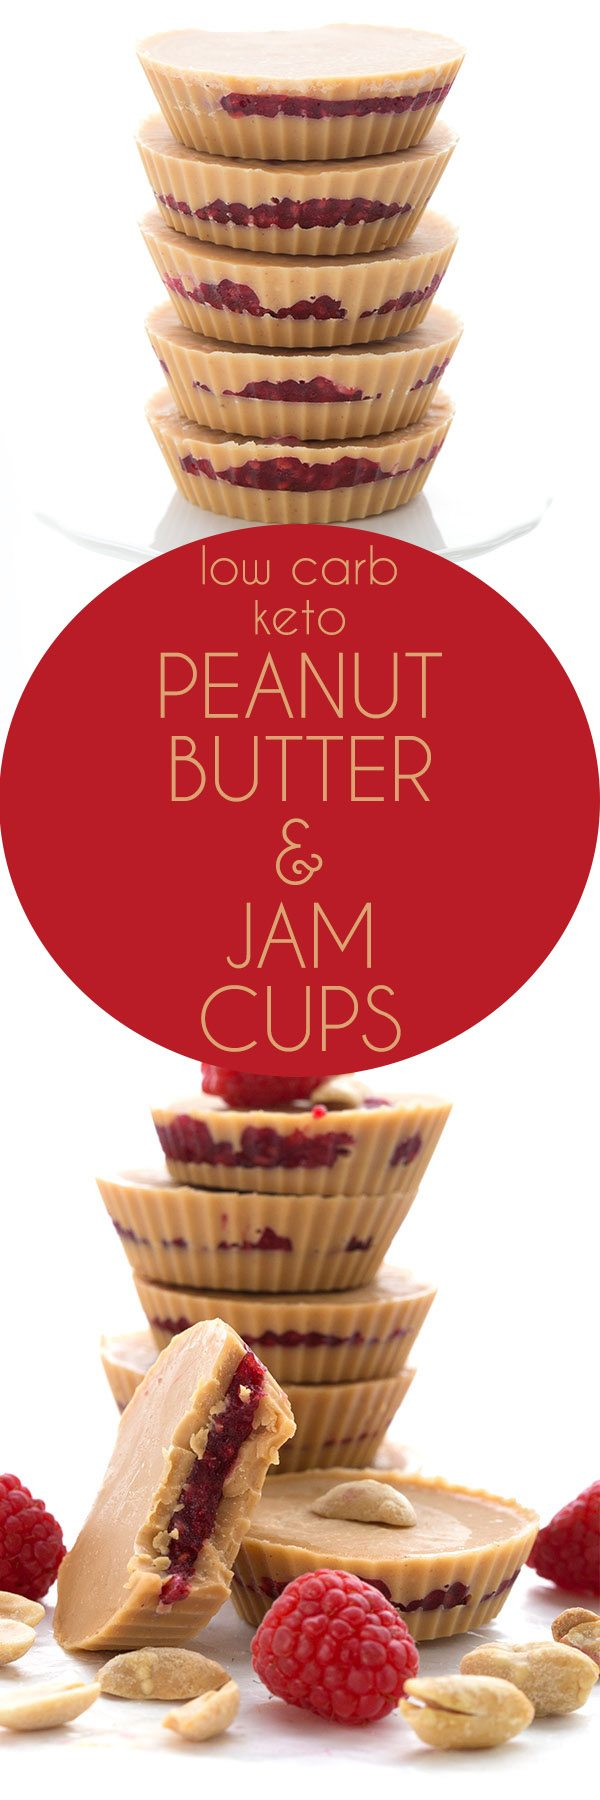 Delicious low carb Peanut Butter and Jam Cups - these easy keto fat bombs taste just like your favorite childhood sandwich. #keto #lowcarb #fatbombs